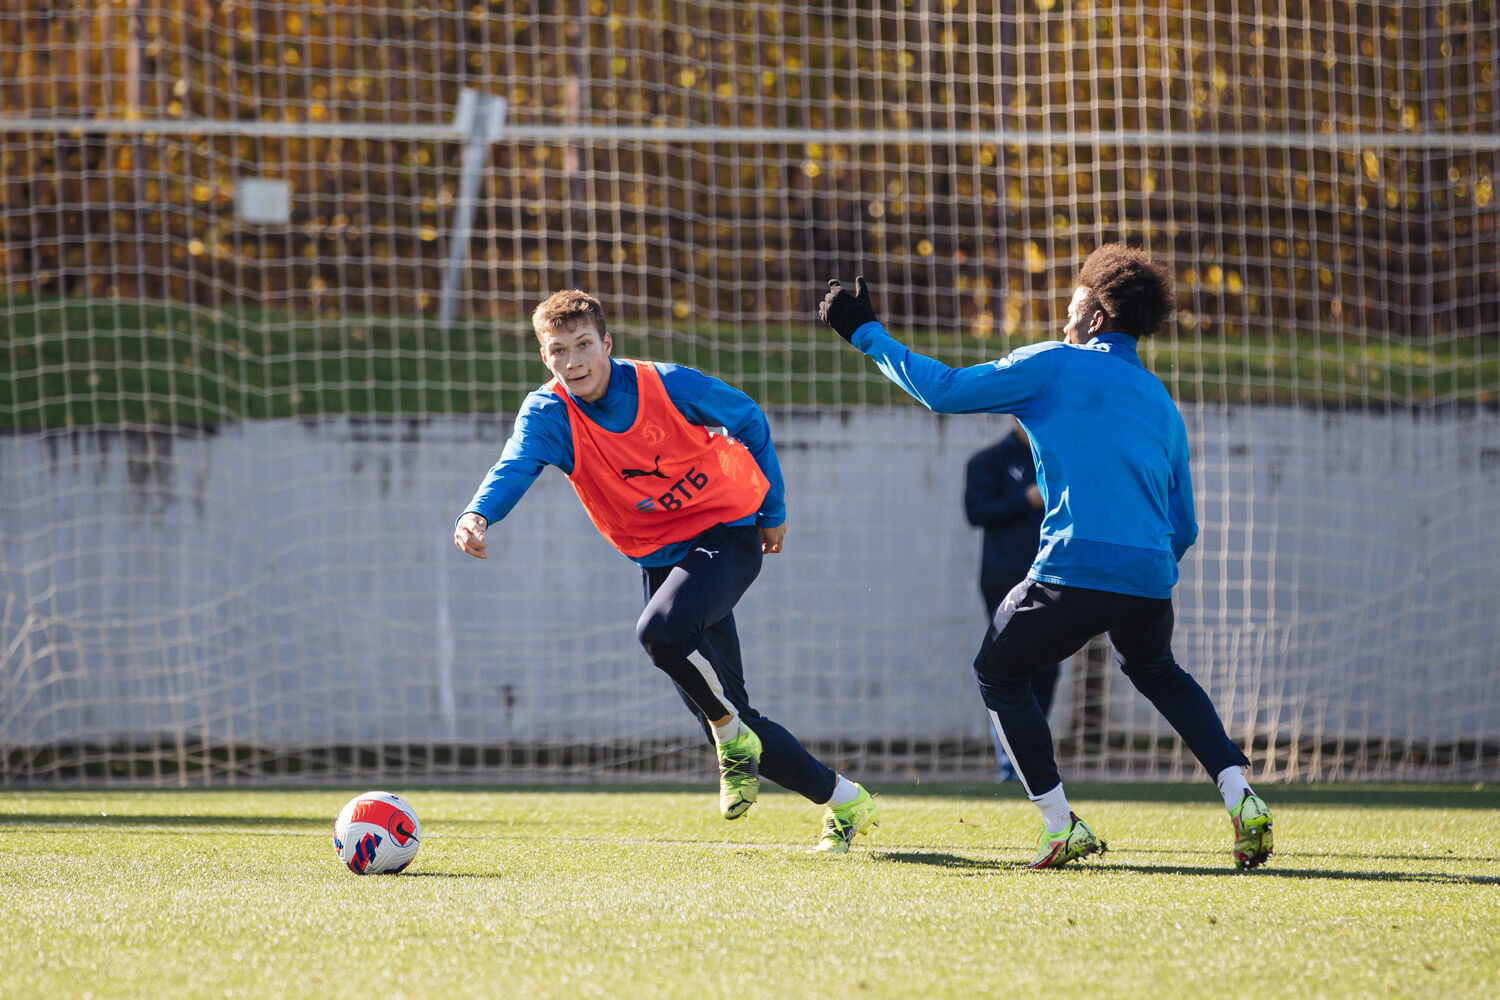 Photo gallery from the Dynamo vs Dynamo-2 warm-up match